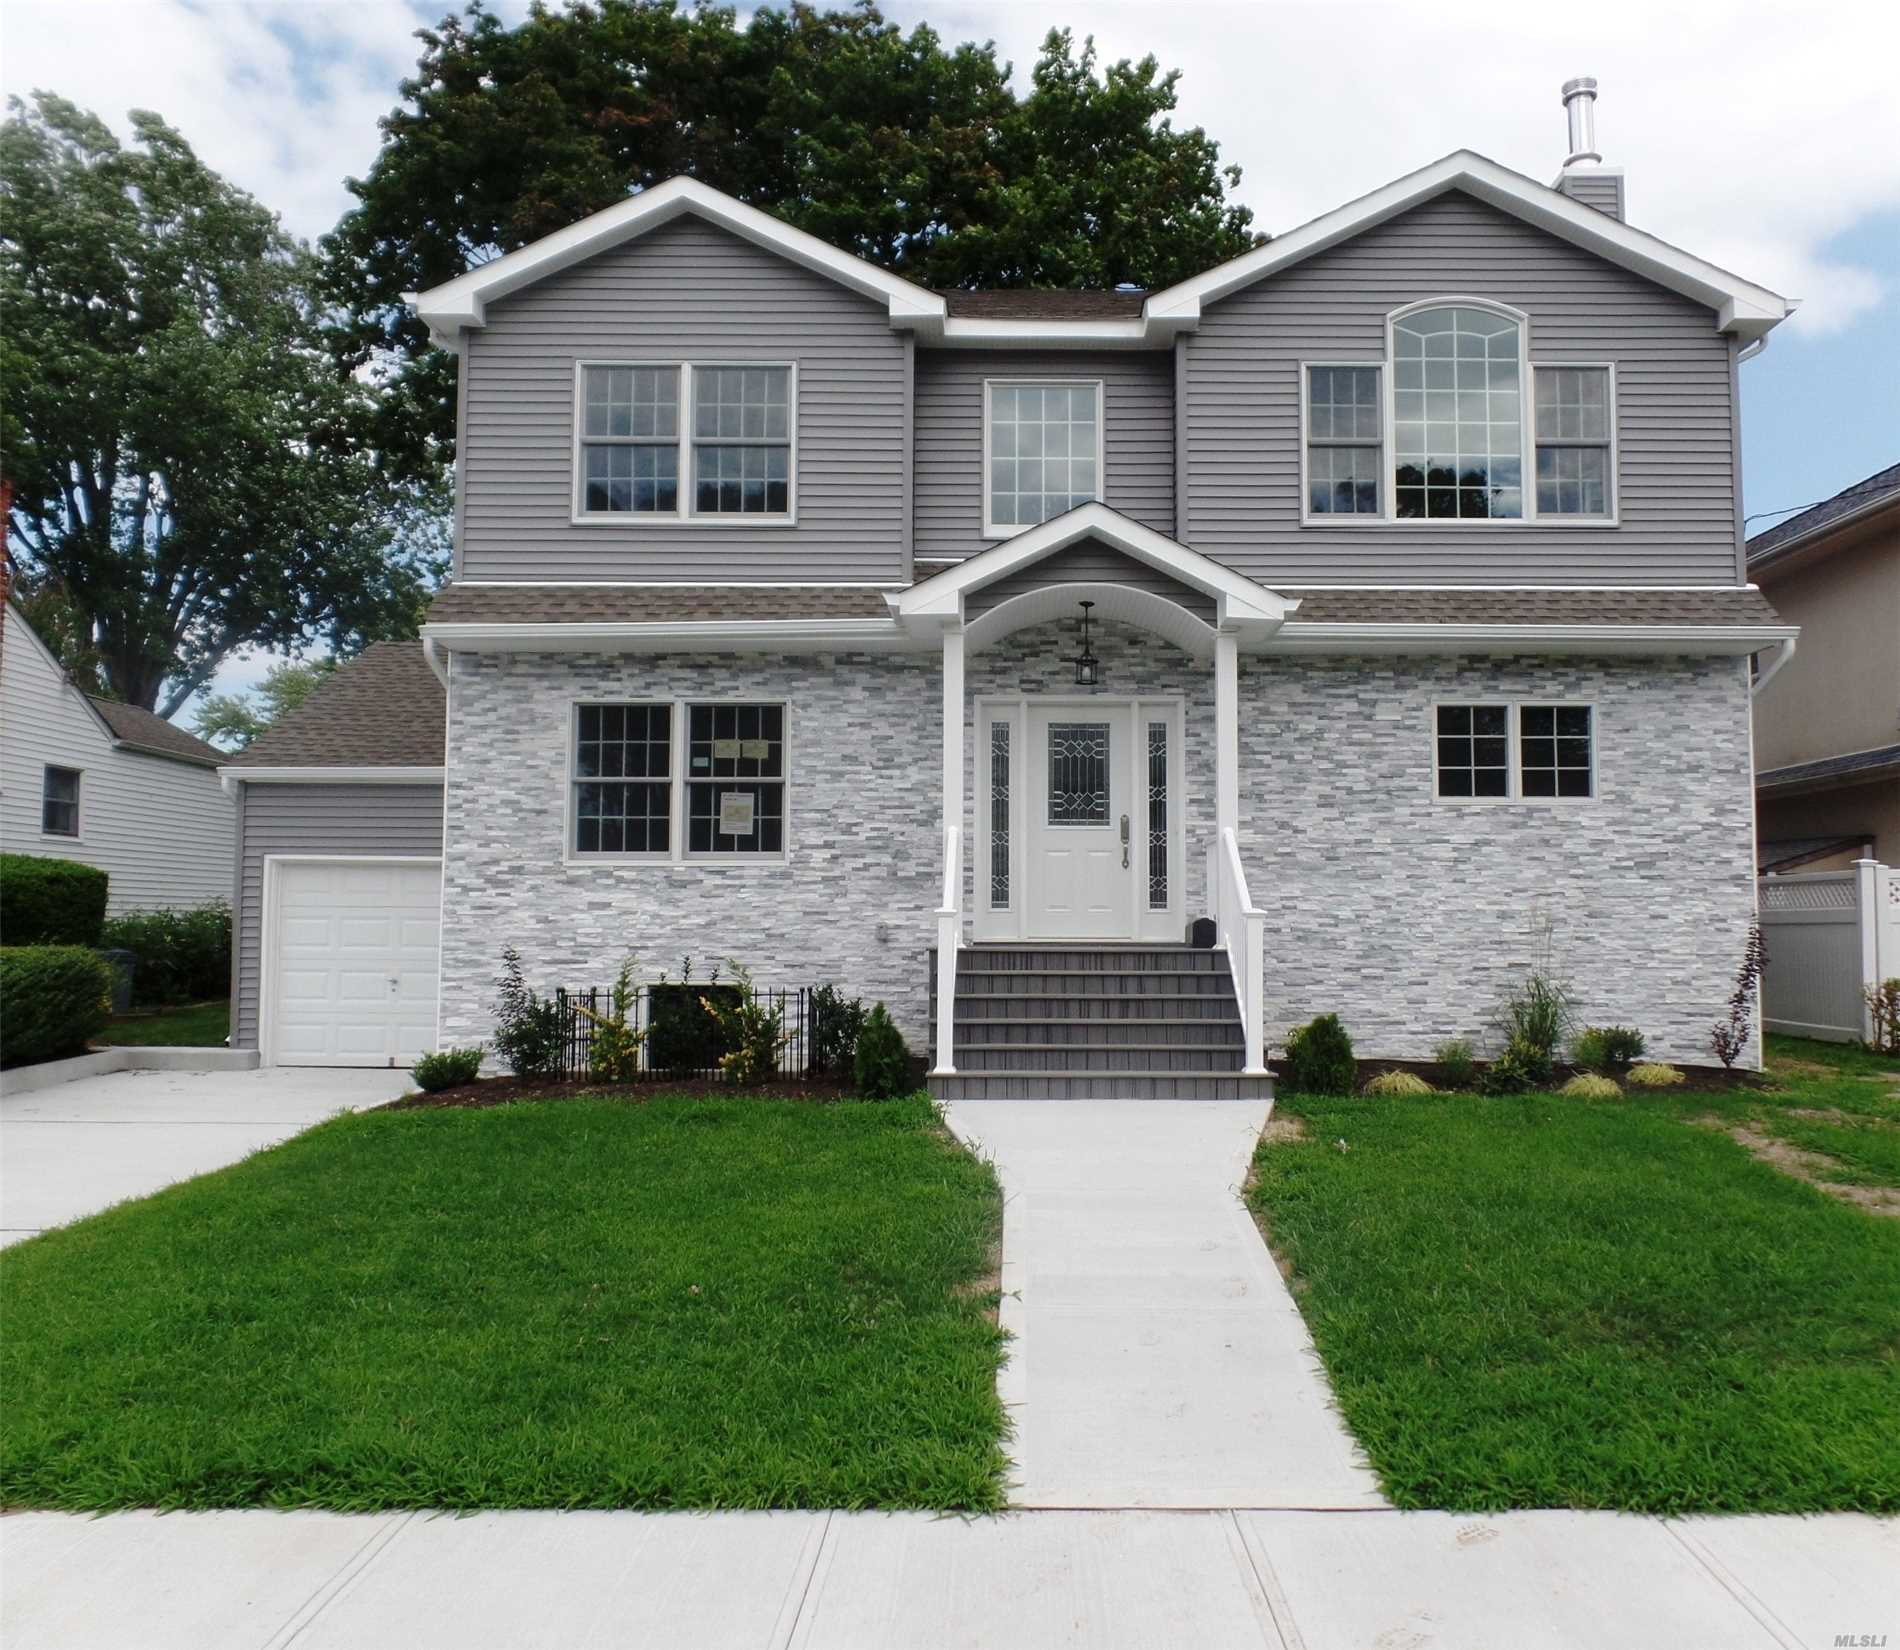 Photo of home for sale at 133 Ocean Ave, Massapequa Park NY